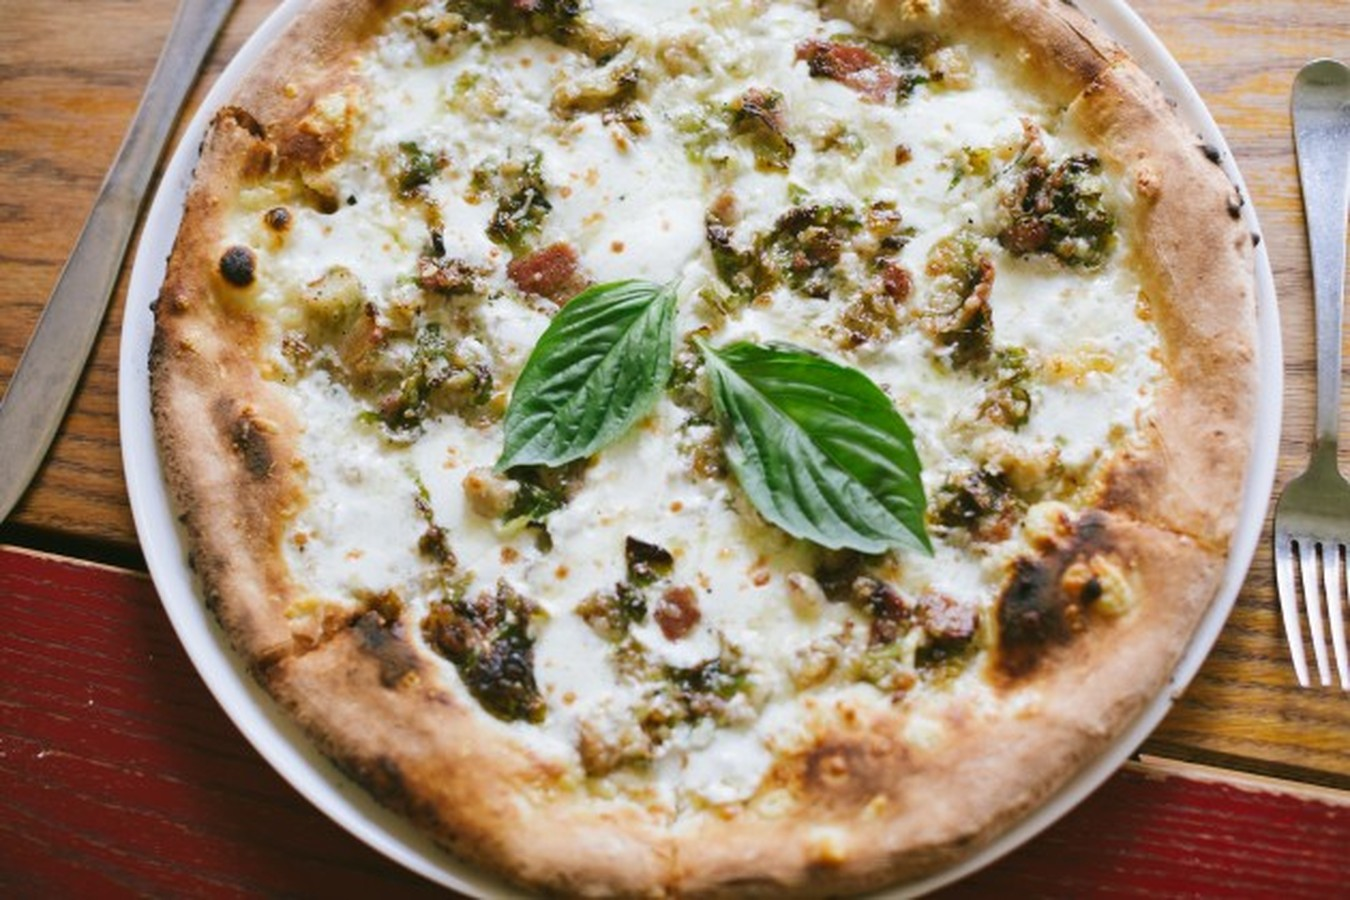 Tavola Pizza Tavola Hell 39s Kitchen New York The Infatuation